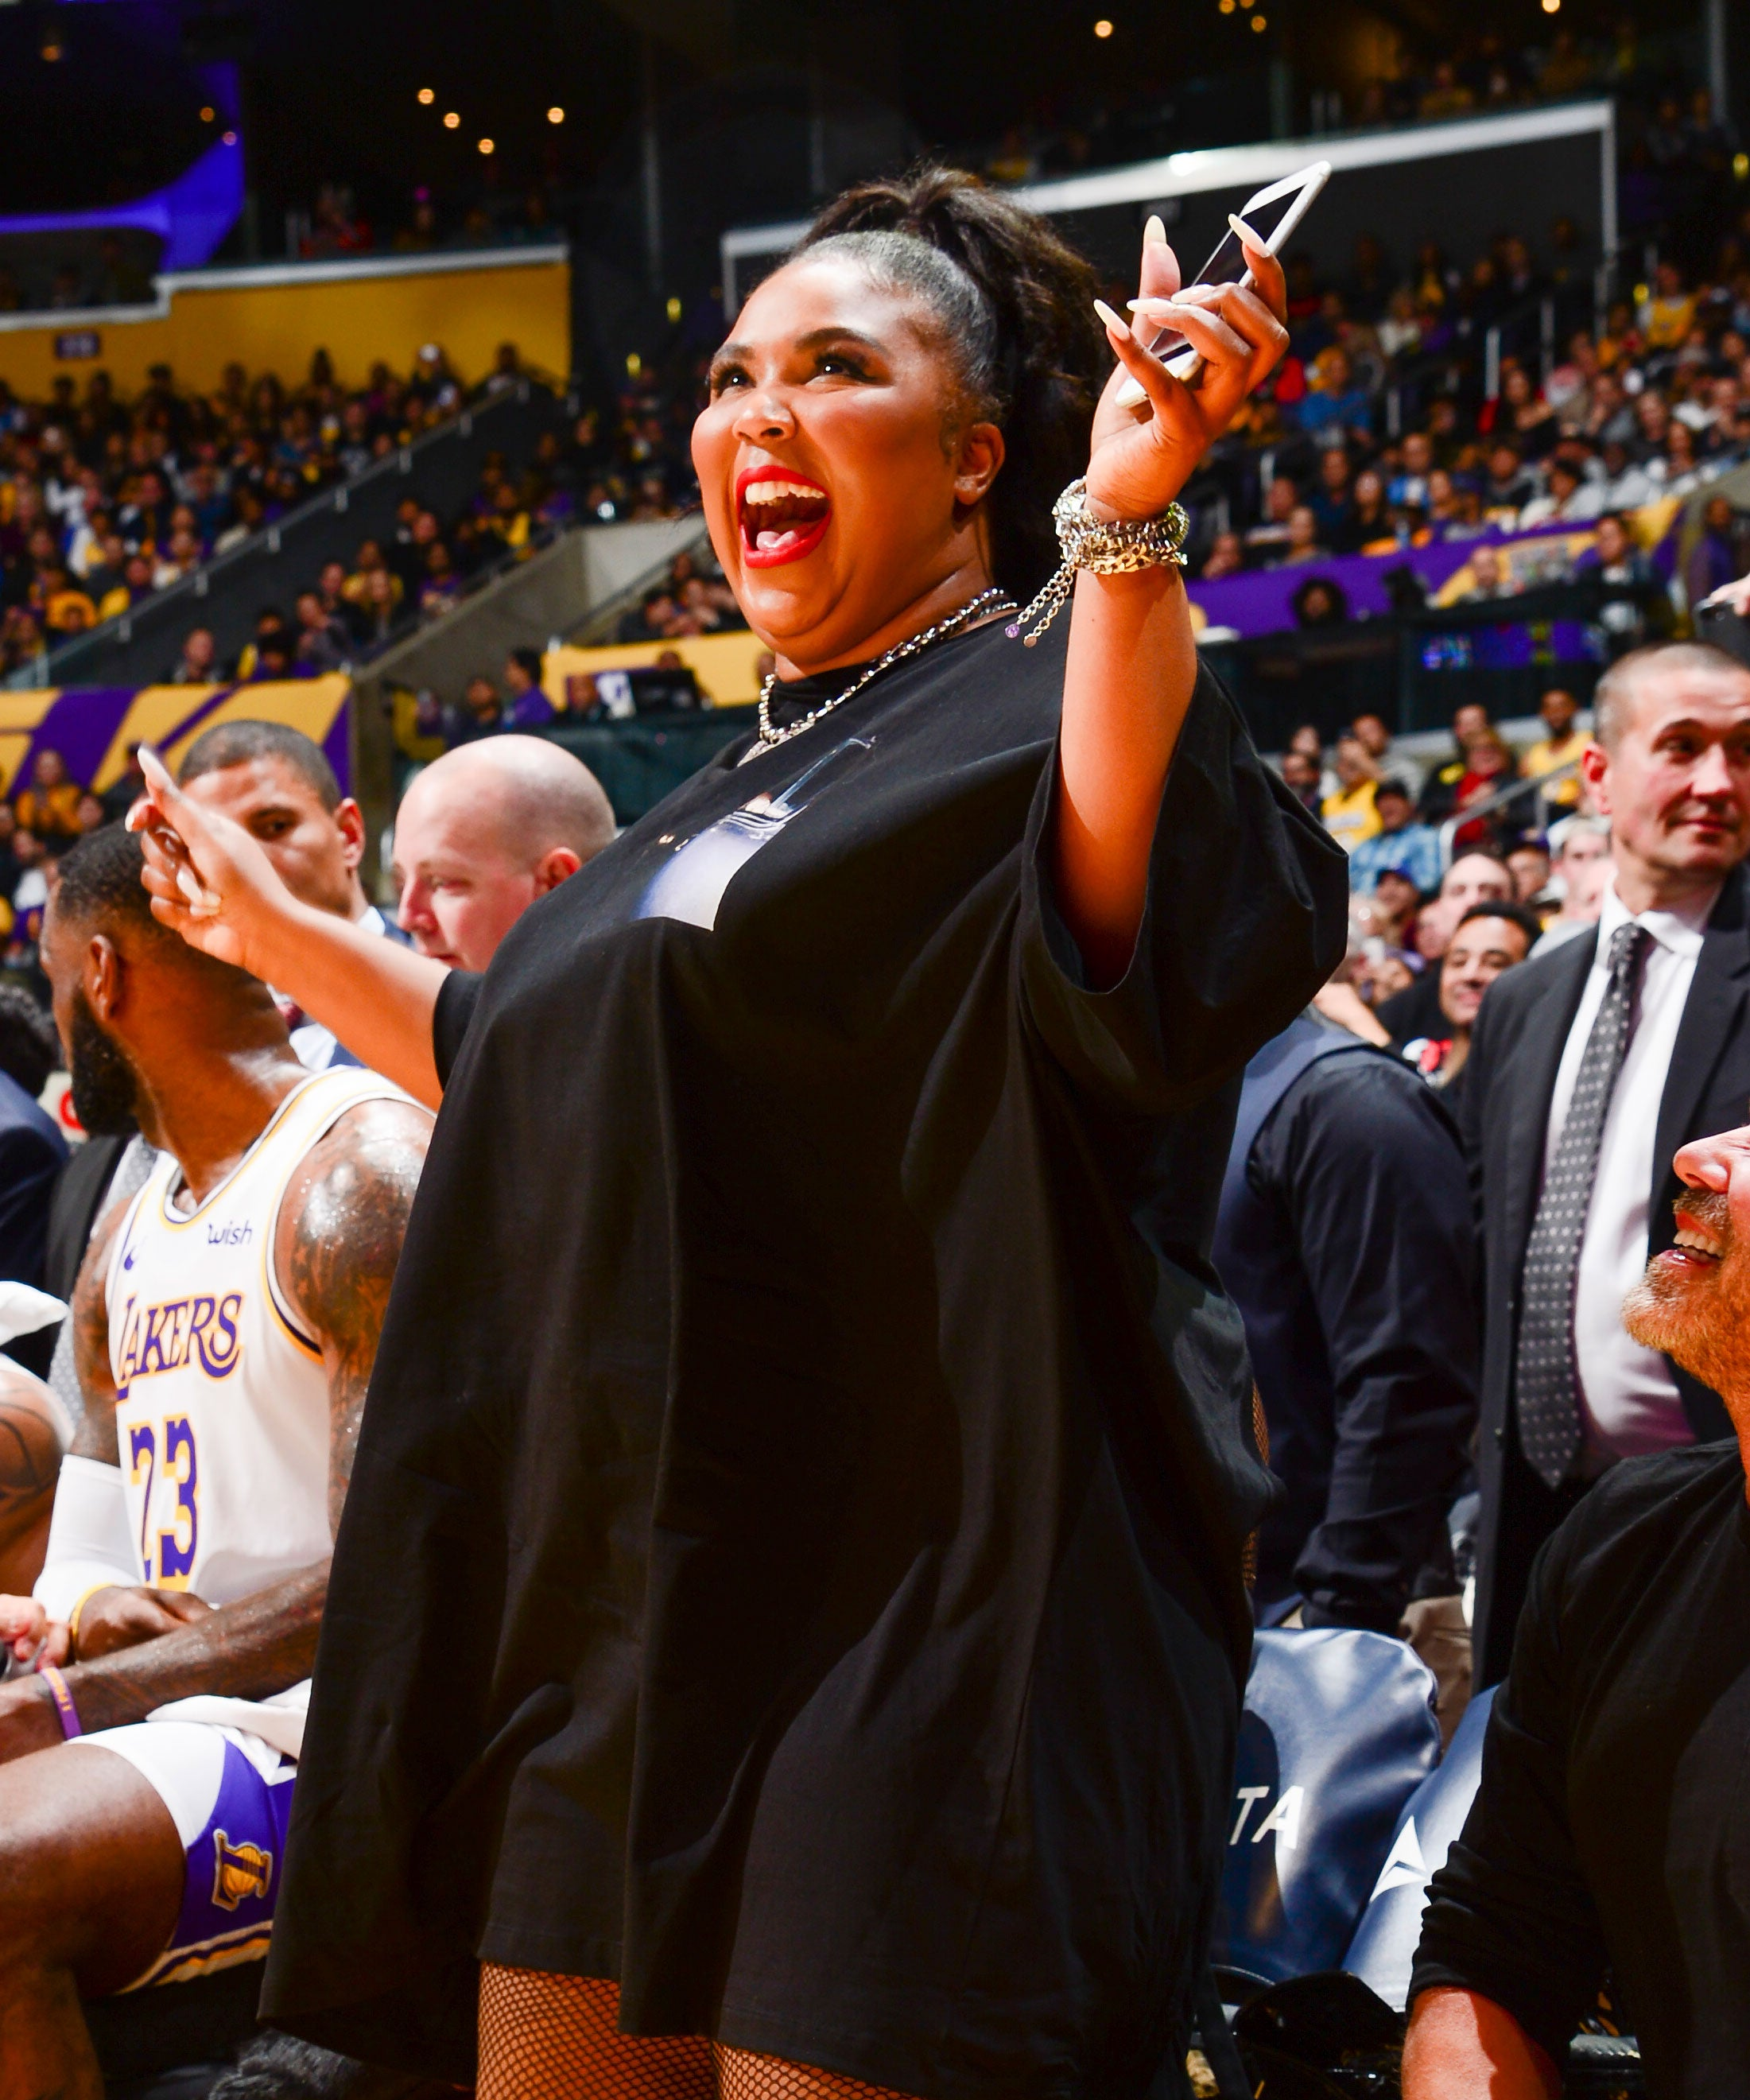 Lizzo Speaks Out About Her Thong At The Lakers Game